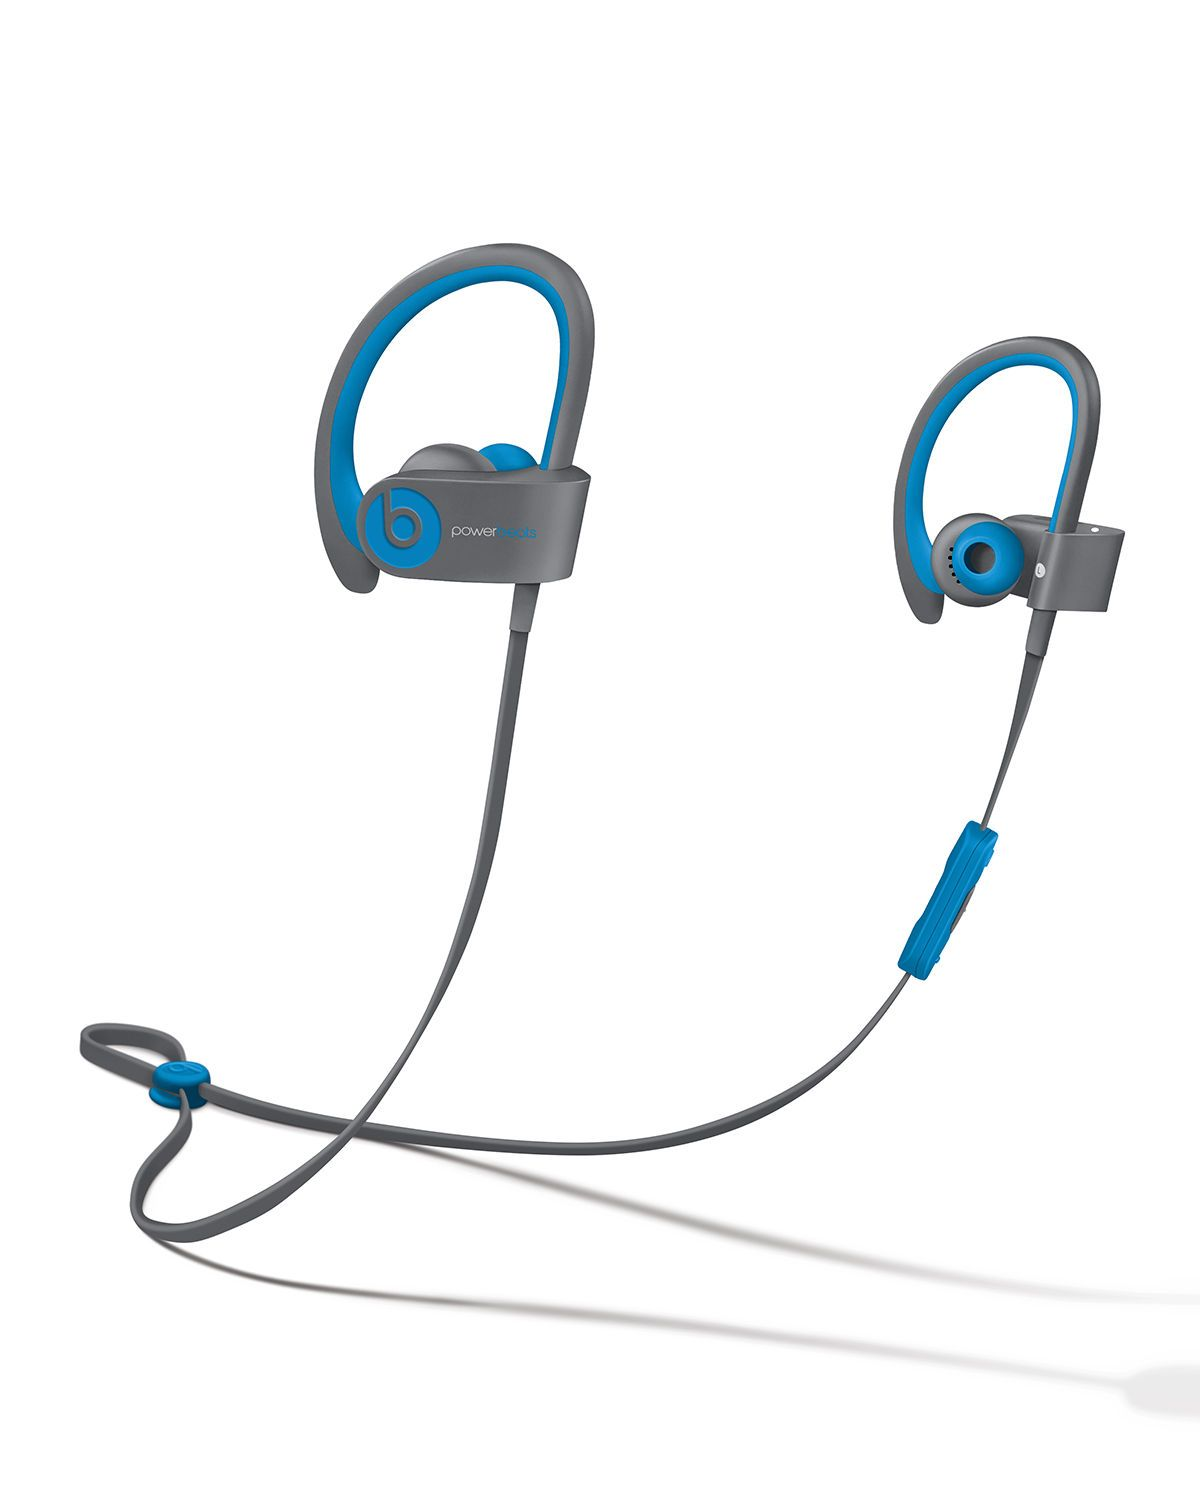 cc52dbf715f UNDERCOVER & Beats by Dre Come Together for Limited Edition Earphones